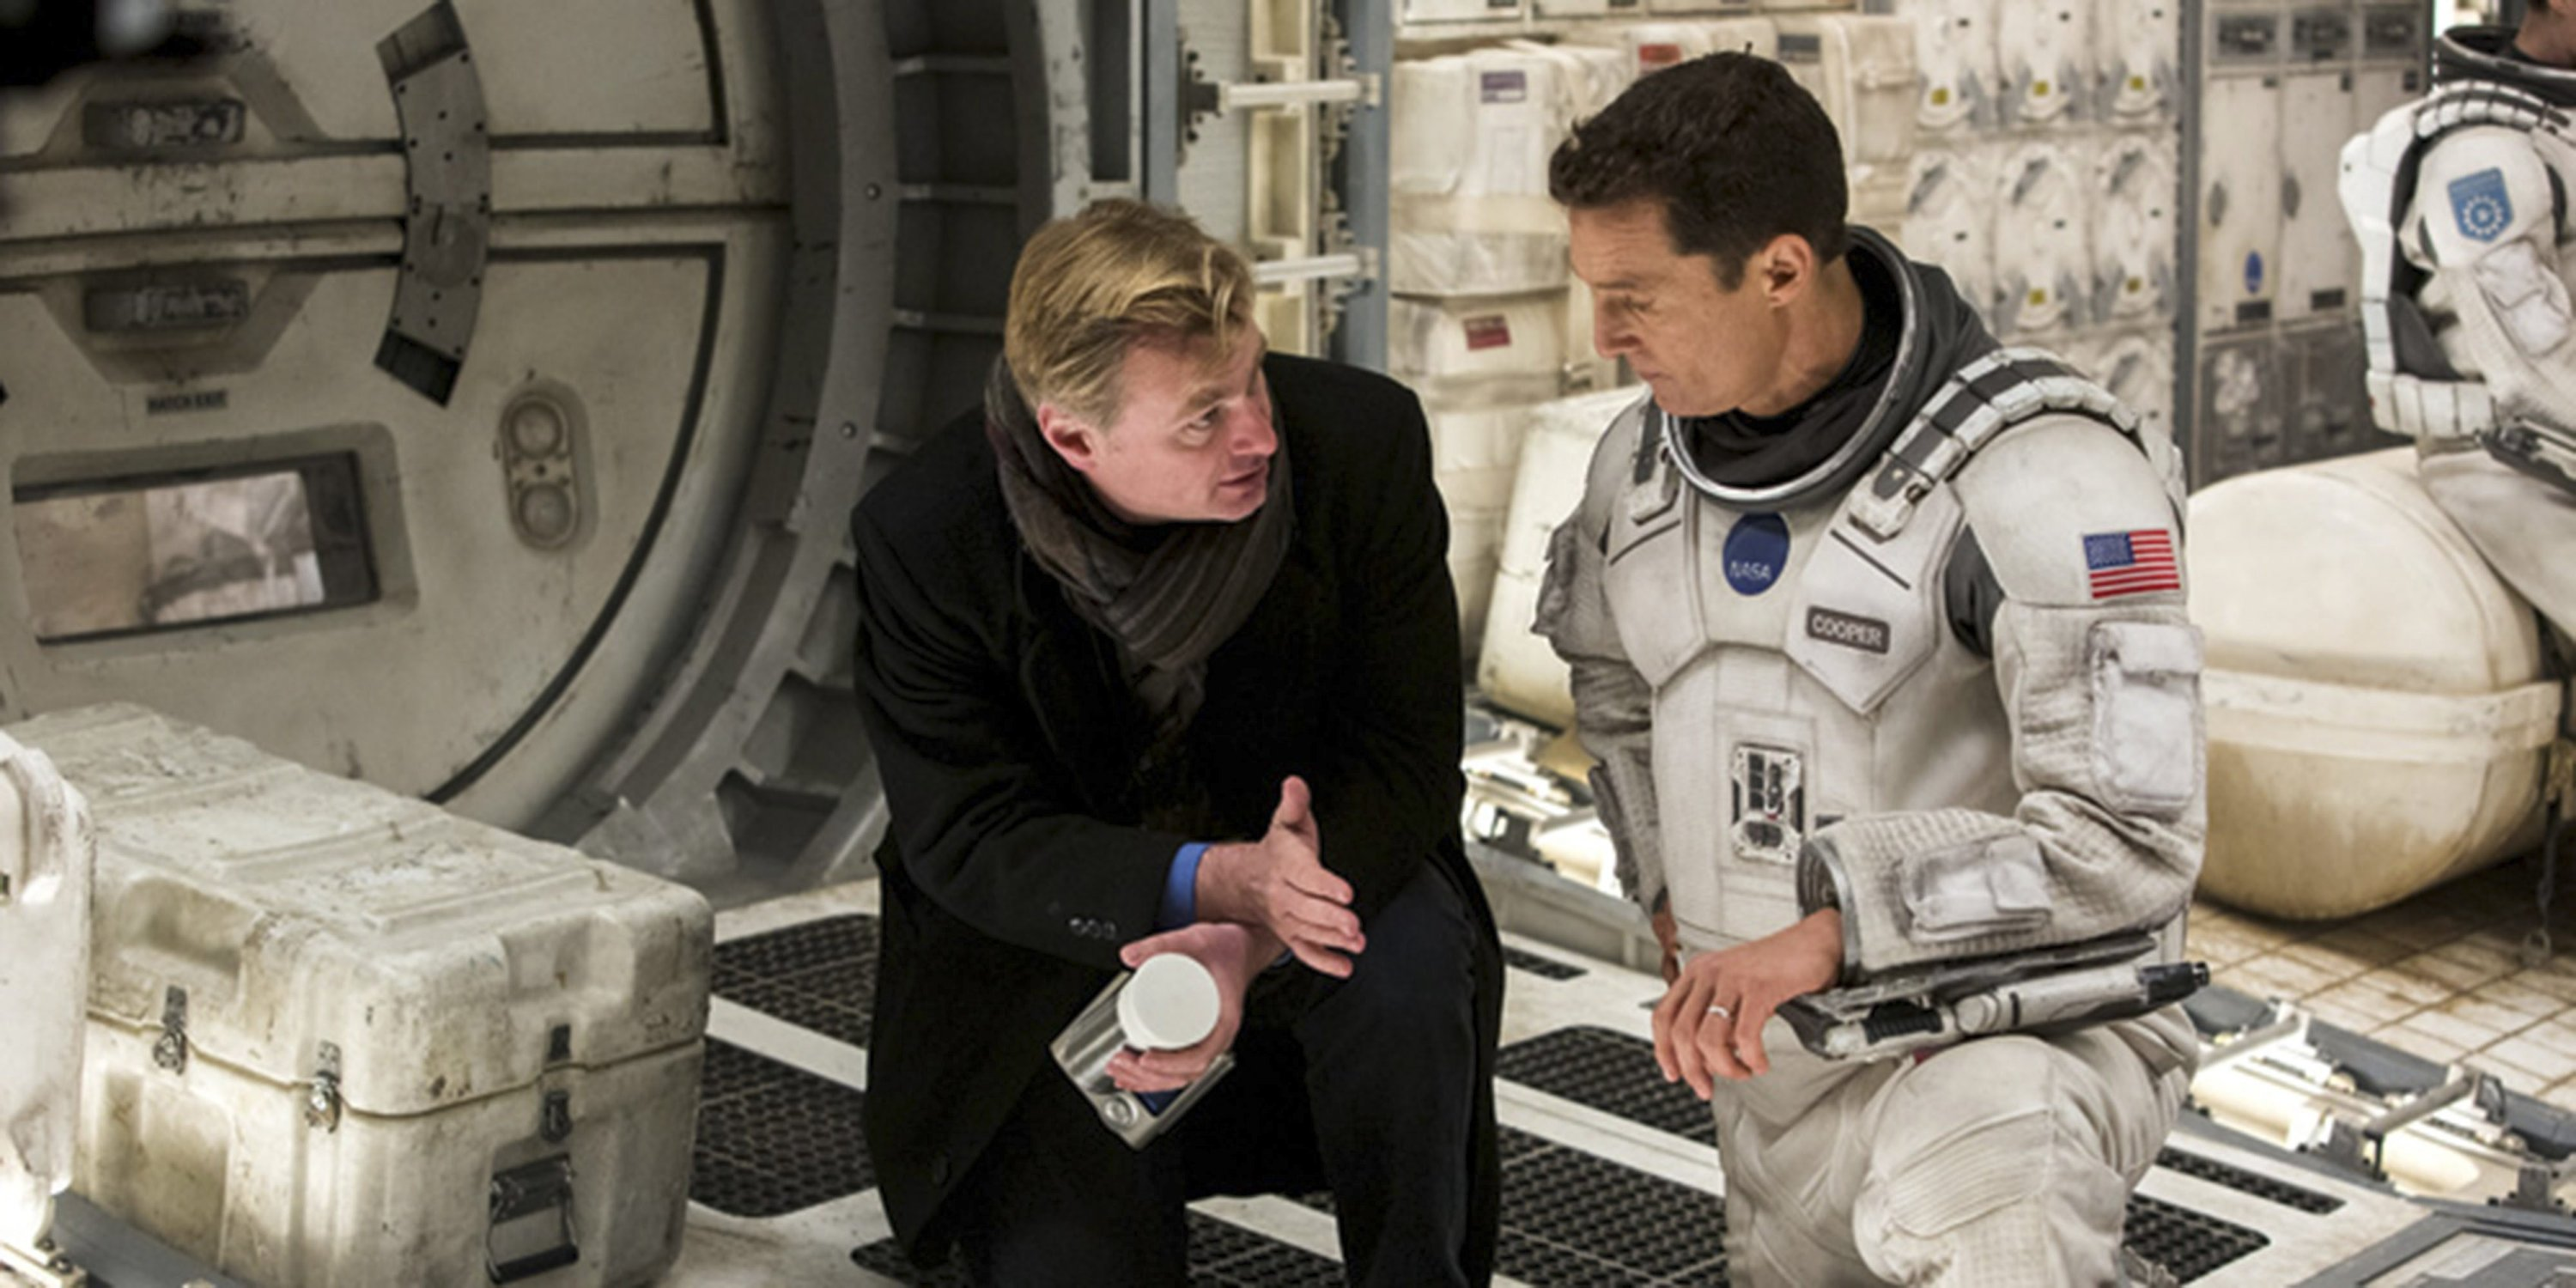 Christopher Nolan speaks with Matthew McConaughey during the filming of 'Interstellar'.